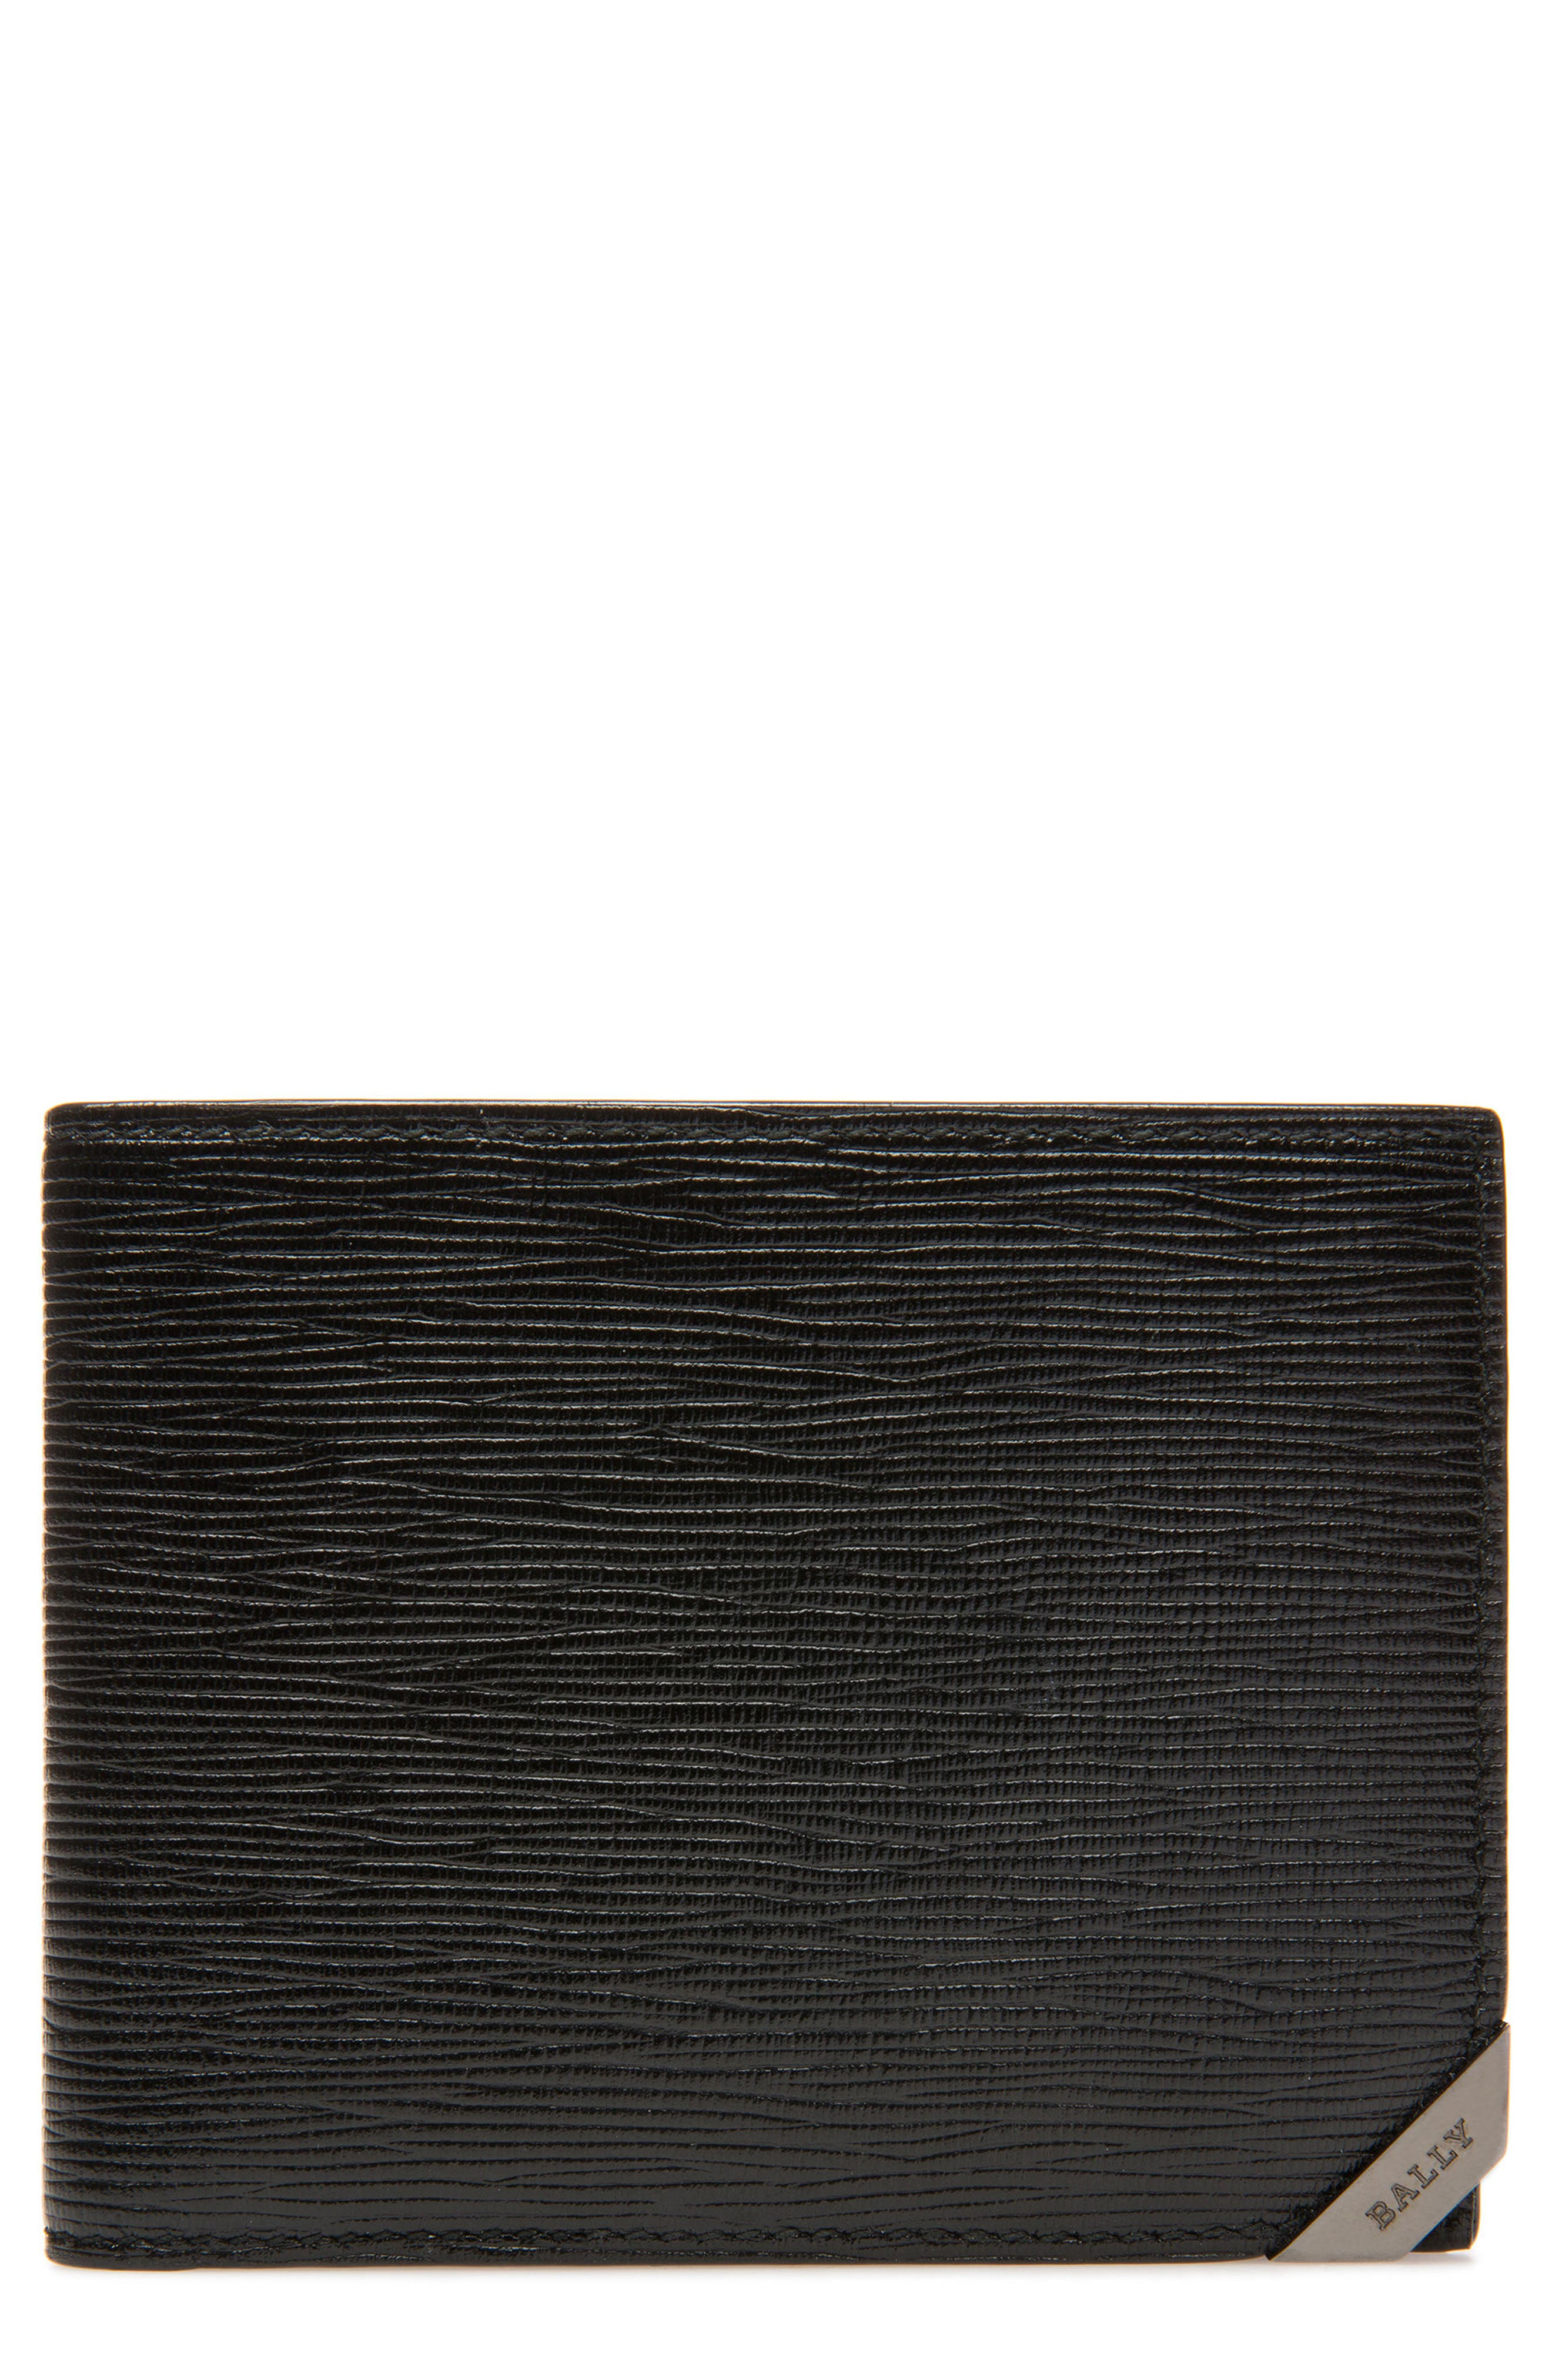 Bevye Leather Wallet,                         Main,                         color, 001